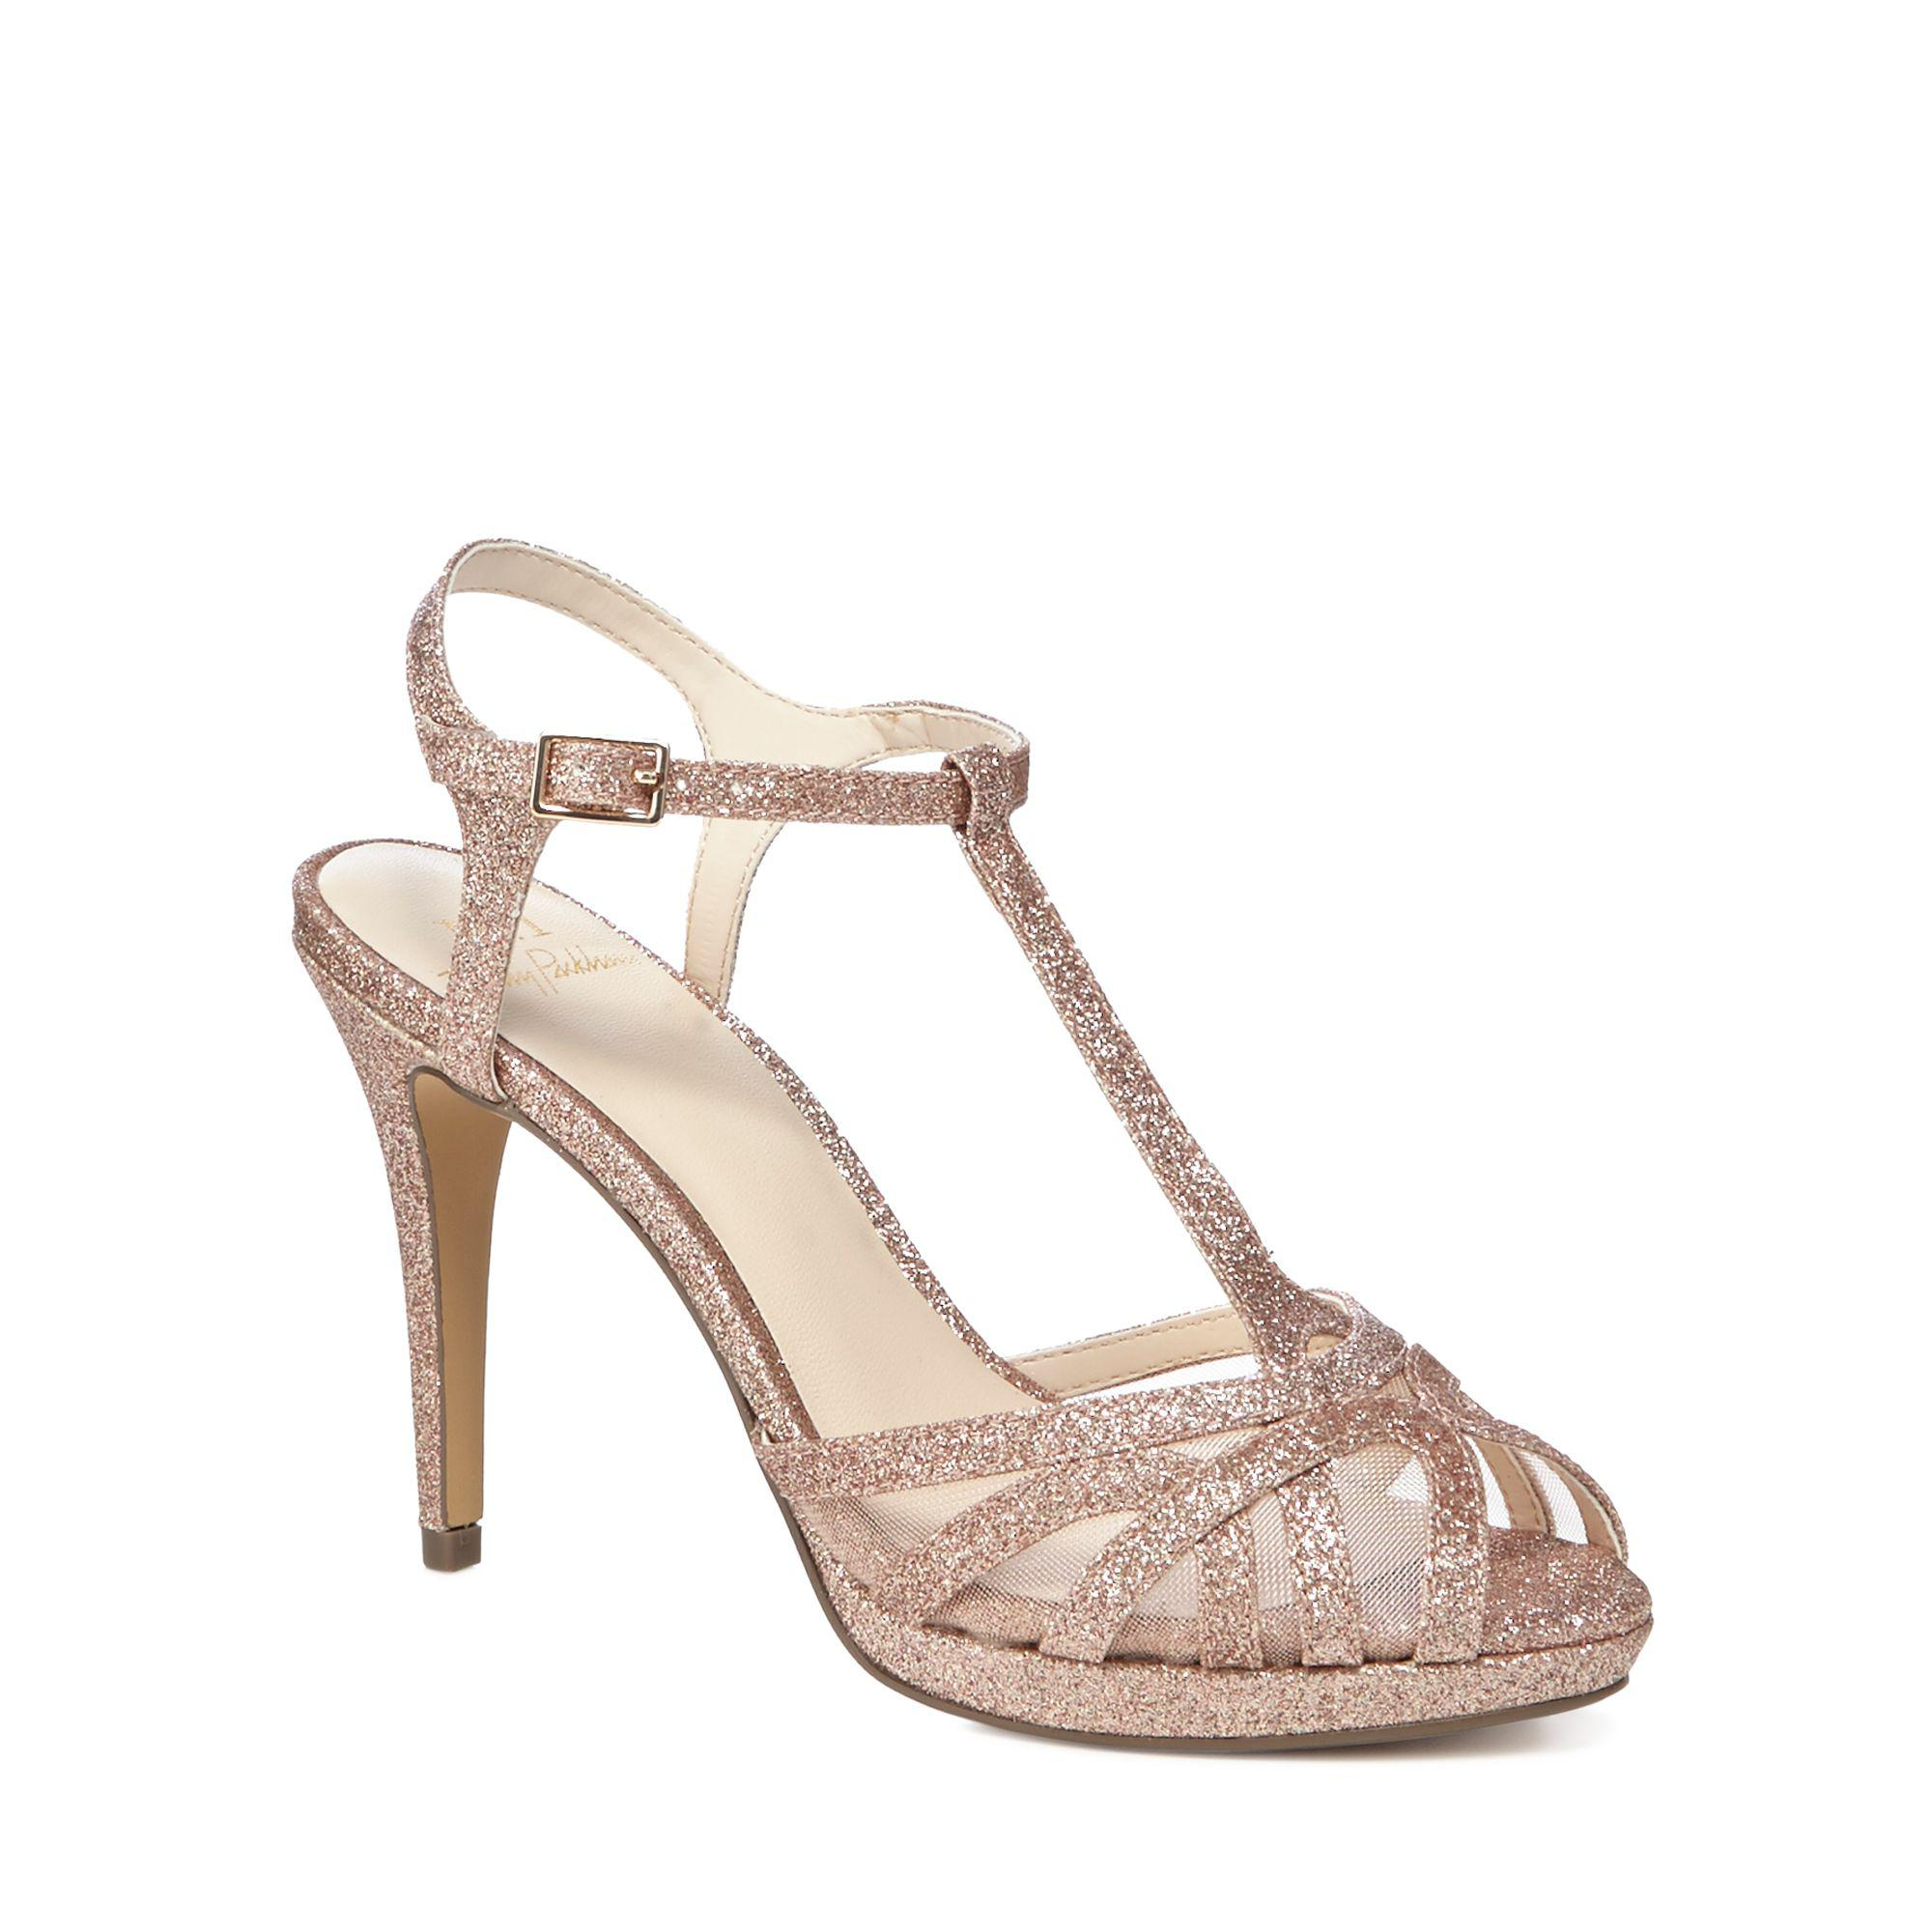 afd9fe94d Jenny Packham Rose Gold Glitter  polly  High Stiletto Heel T-bar ...